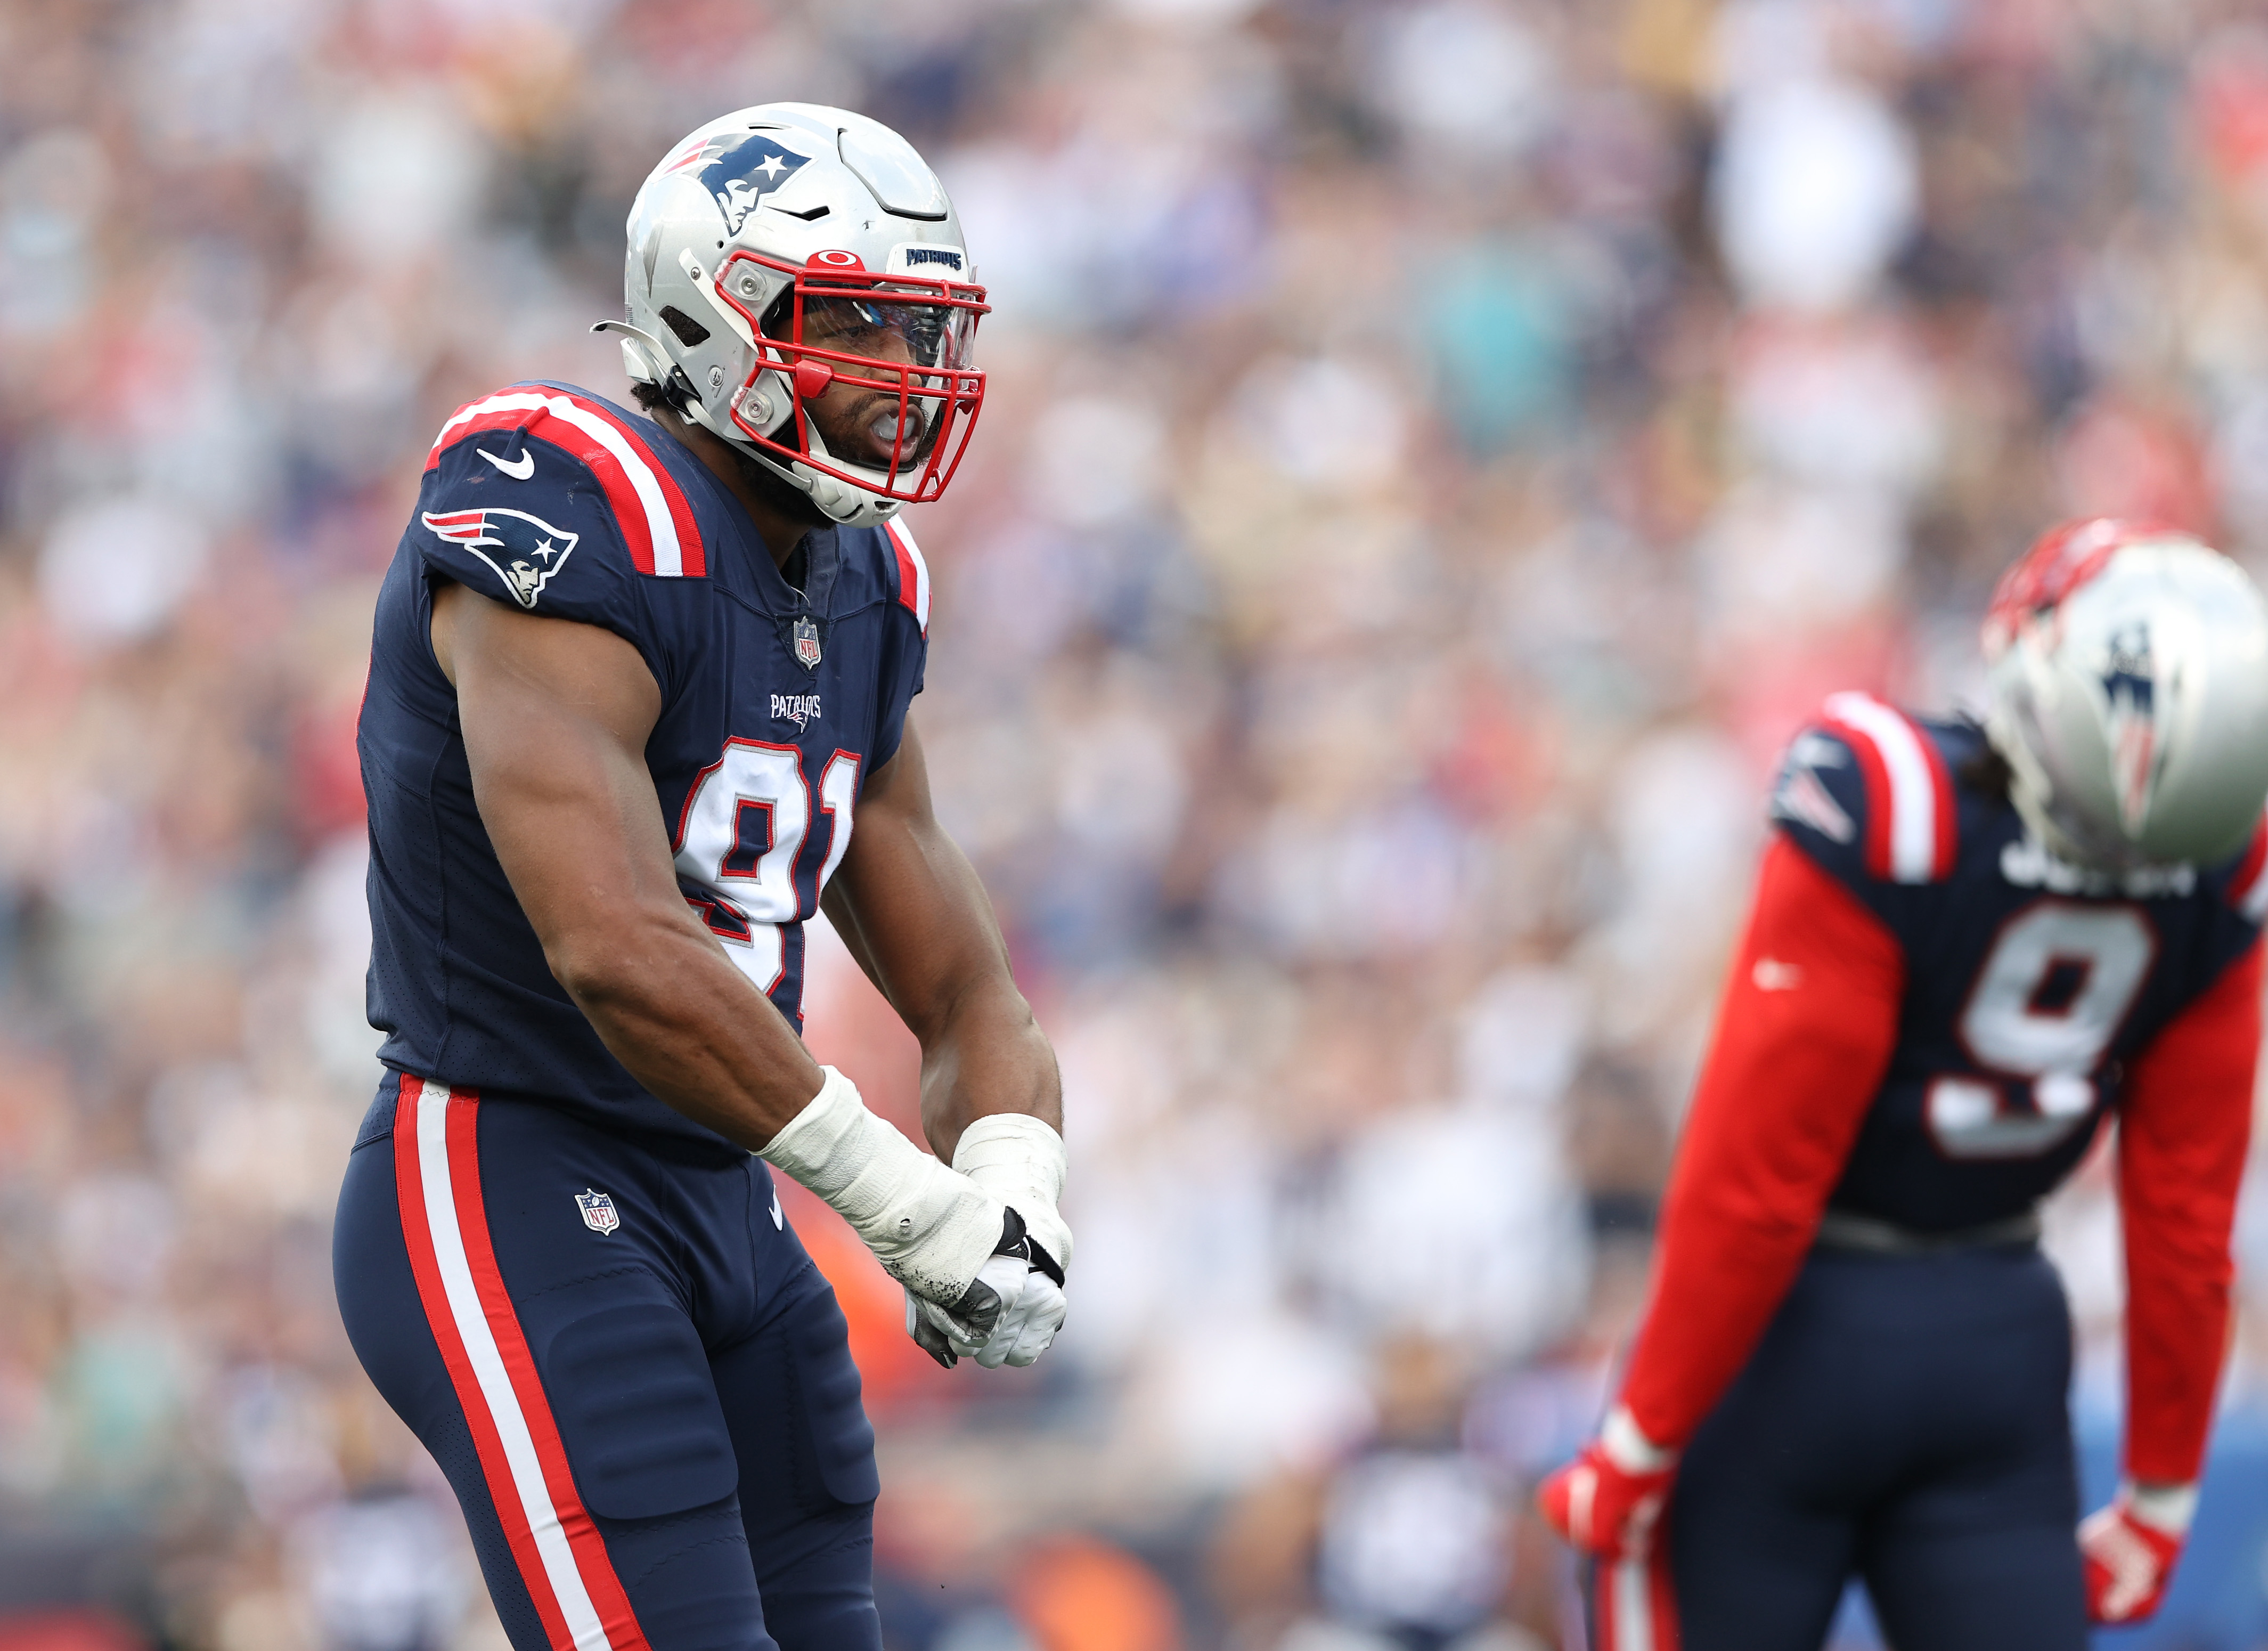 Matt Judon #9 and Deatrich Wise Jr. #91 of the New England Patriots react after a defensive play in the second quarter of the game at Gillette Stadium on September 26, 2021 in Foxborough, Massachusetts.